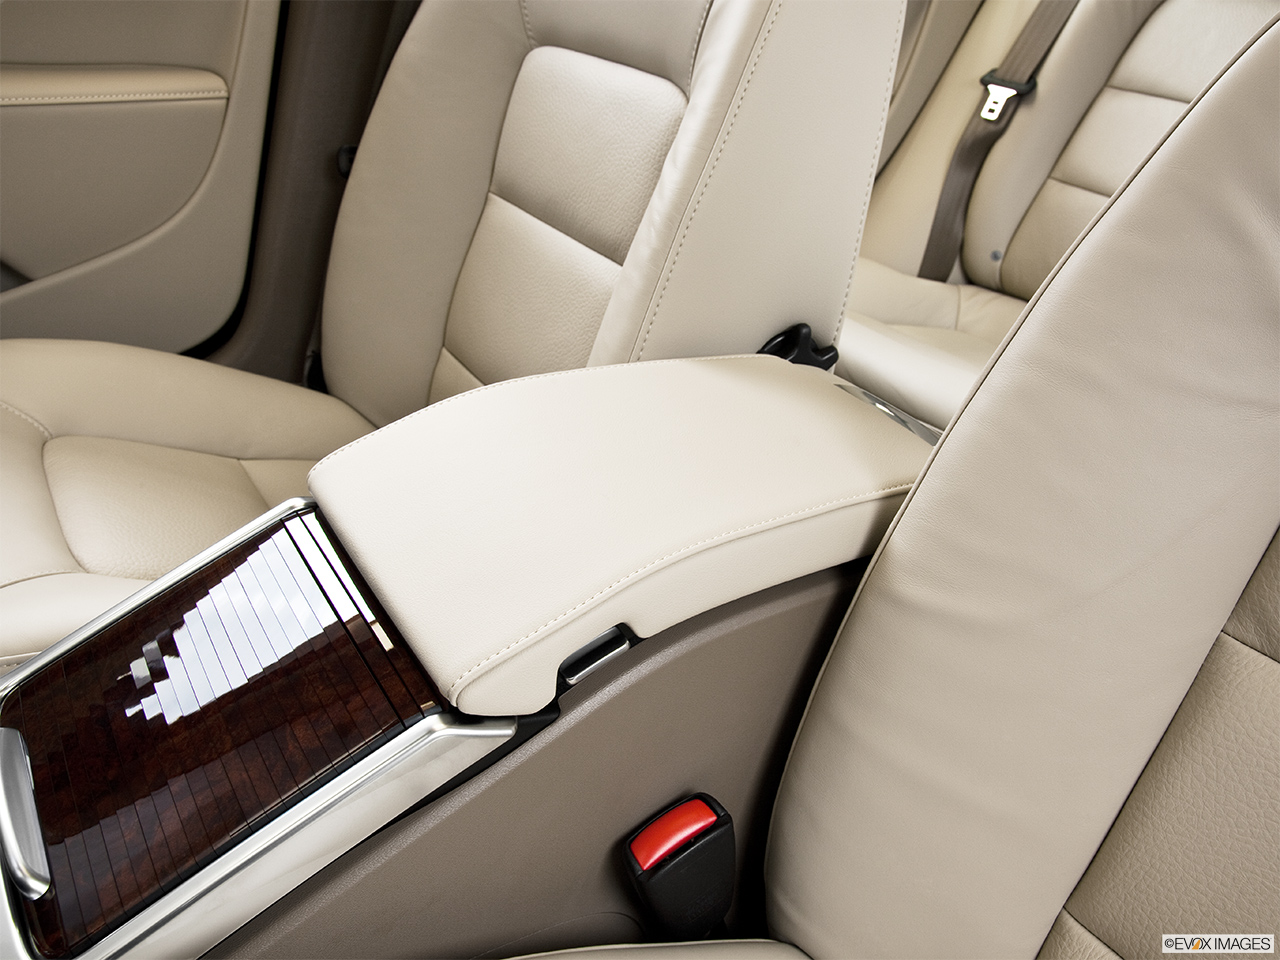 2014 Volvo S80 T6 AWD Platinum Front center console with closed lid, from driver's side looking down